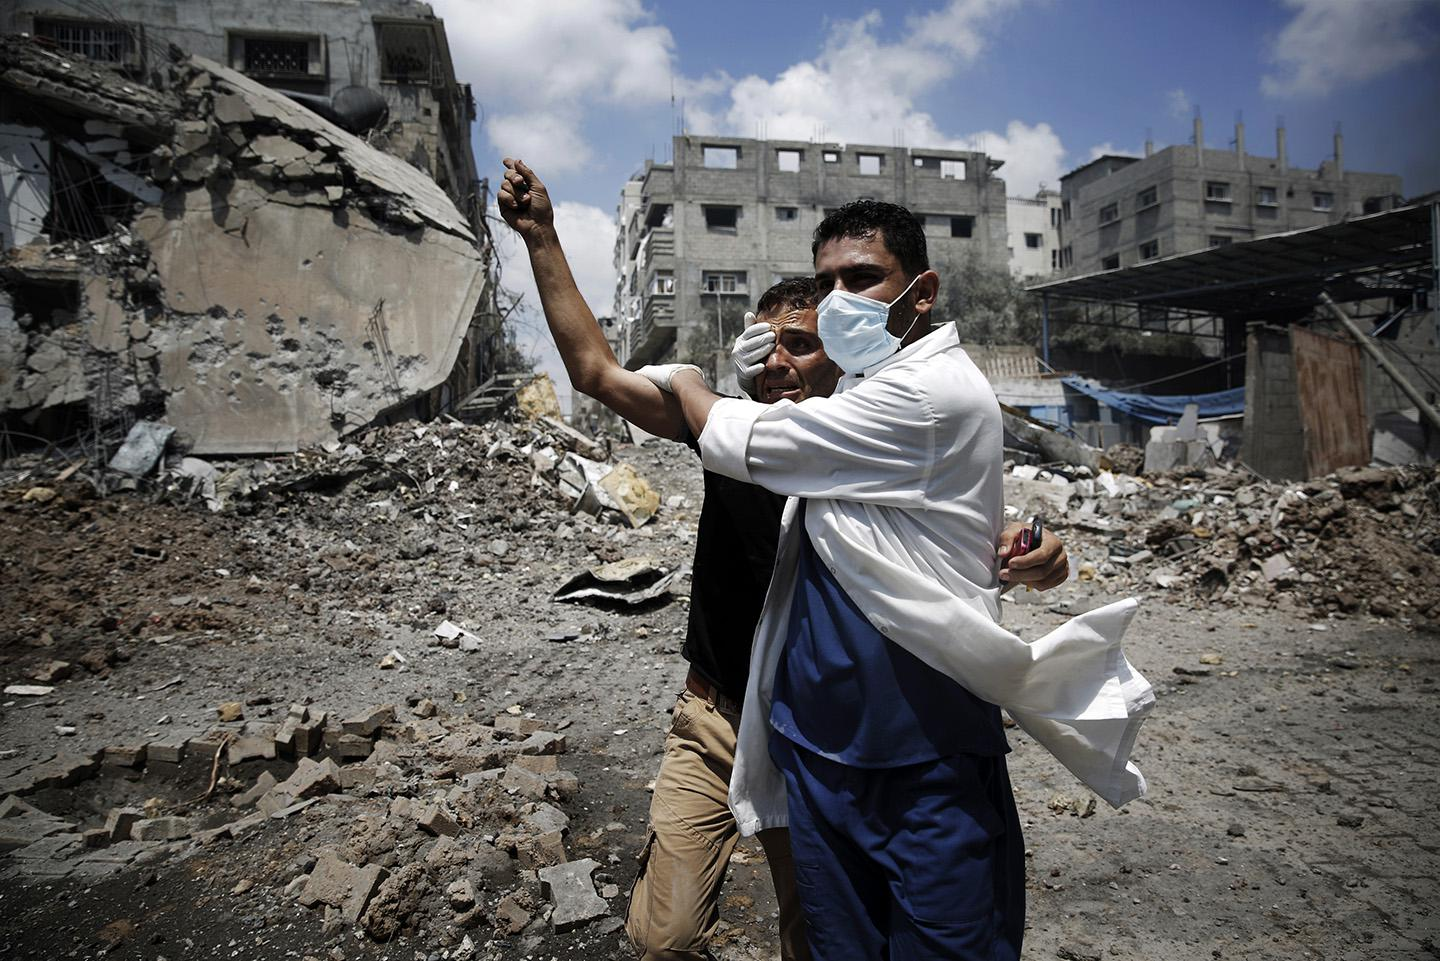 A medic helps a Palestinian in the Shejaia neighborhood, which was heavily shelled by Israel during fighting, in Gaza City.